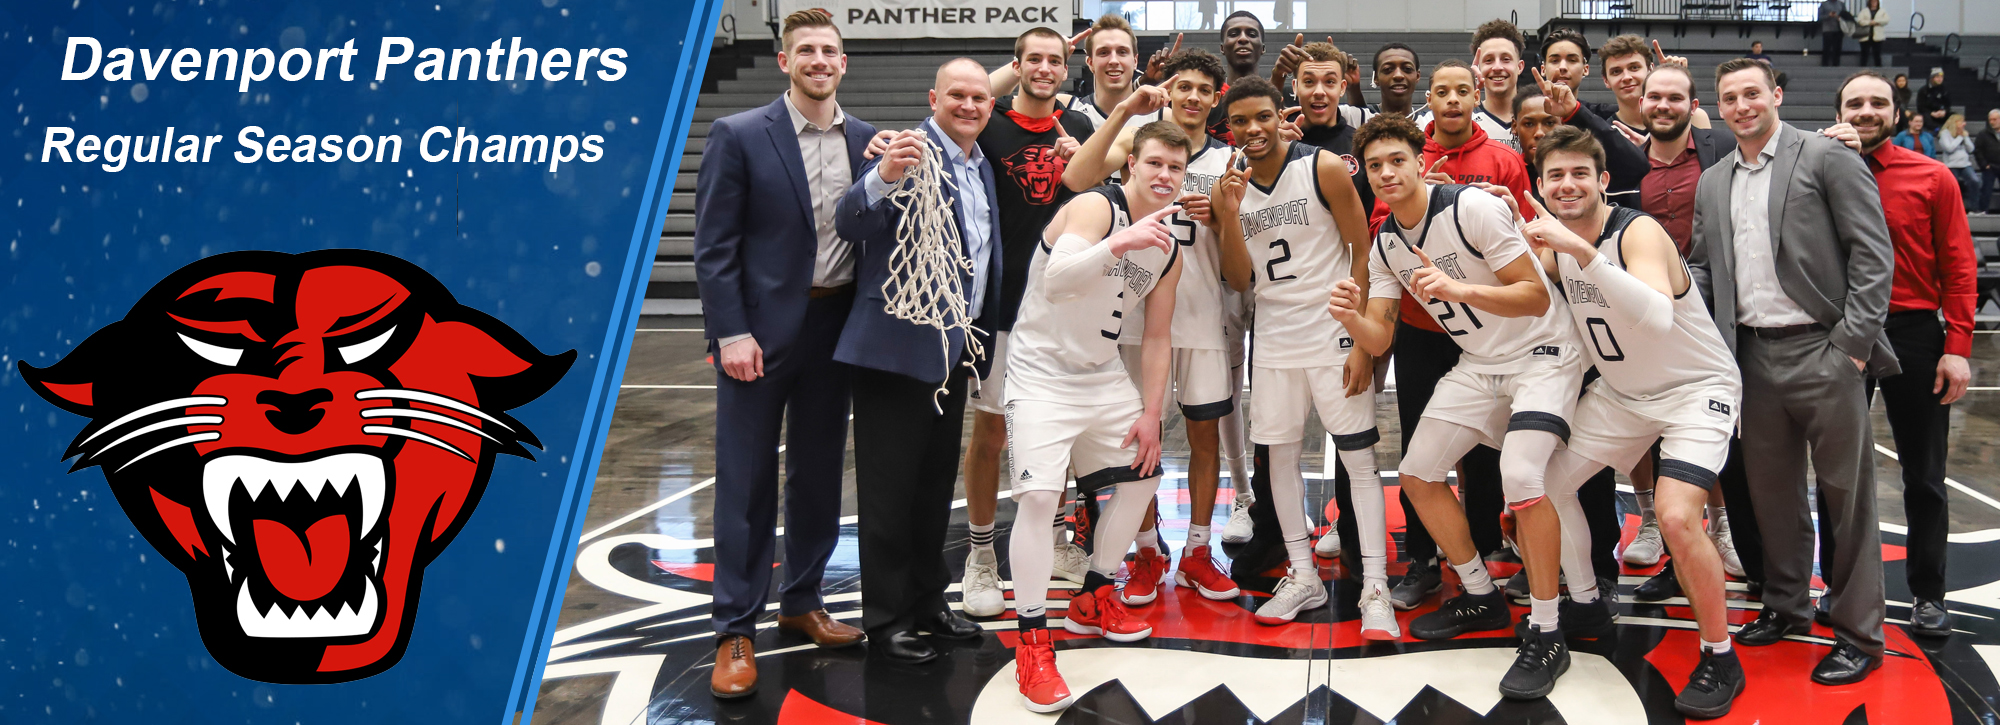 Davenport clinches GLIAC regular-season men's basketball title